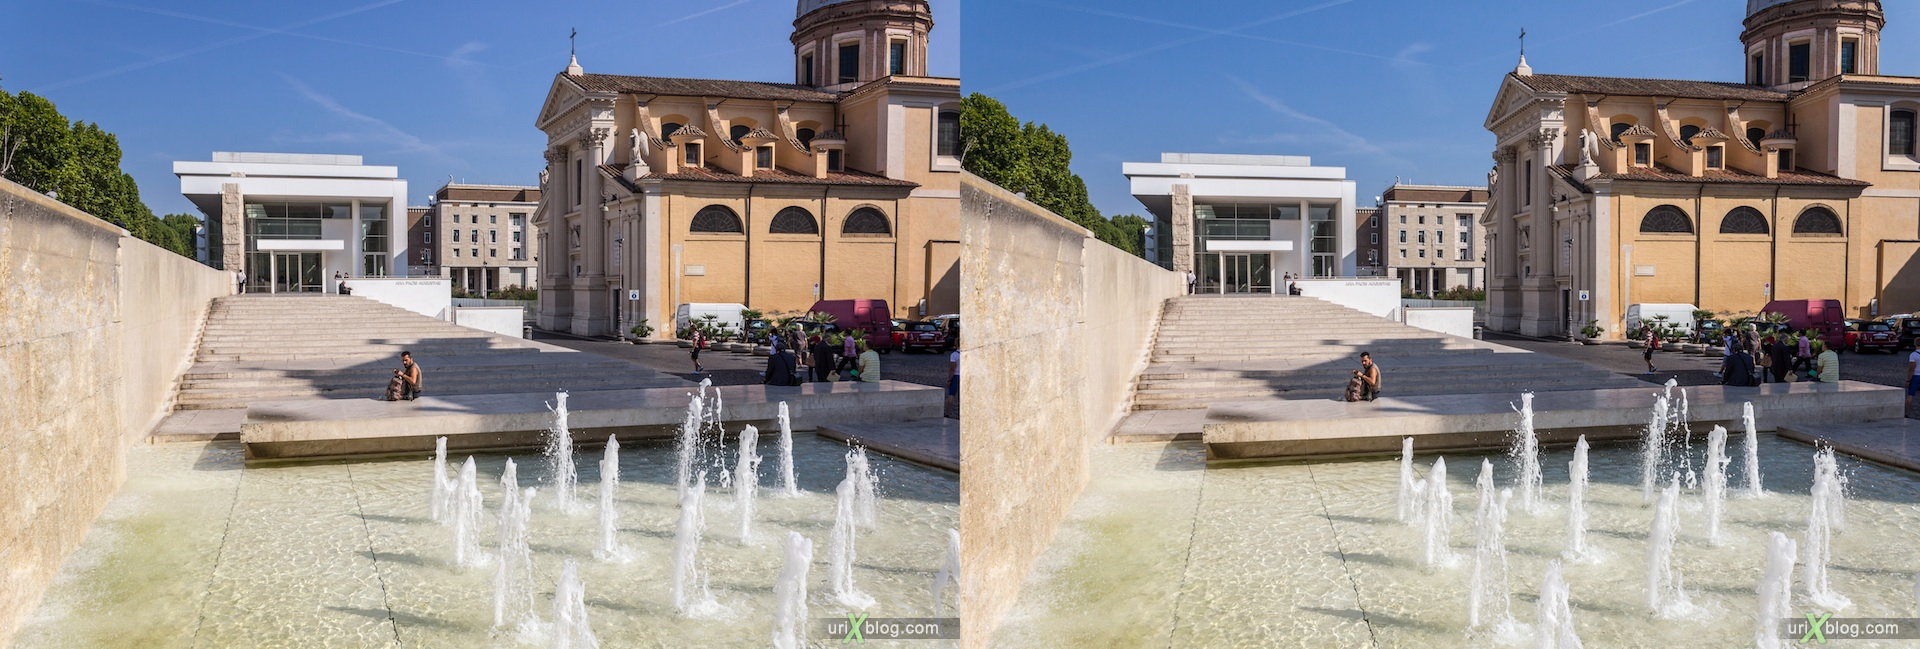 2012, Ara Pacis Augustae, altar to Peace, fountains, San Rocco church, 3D, stereo pair, cross-eyed, crossview, cross view stereo pair